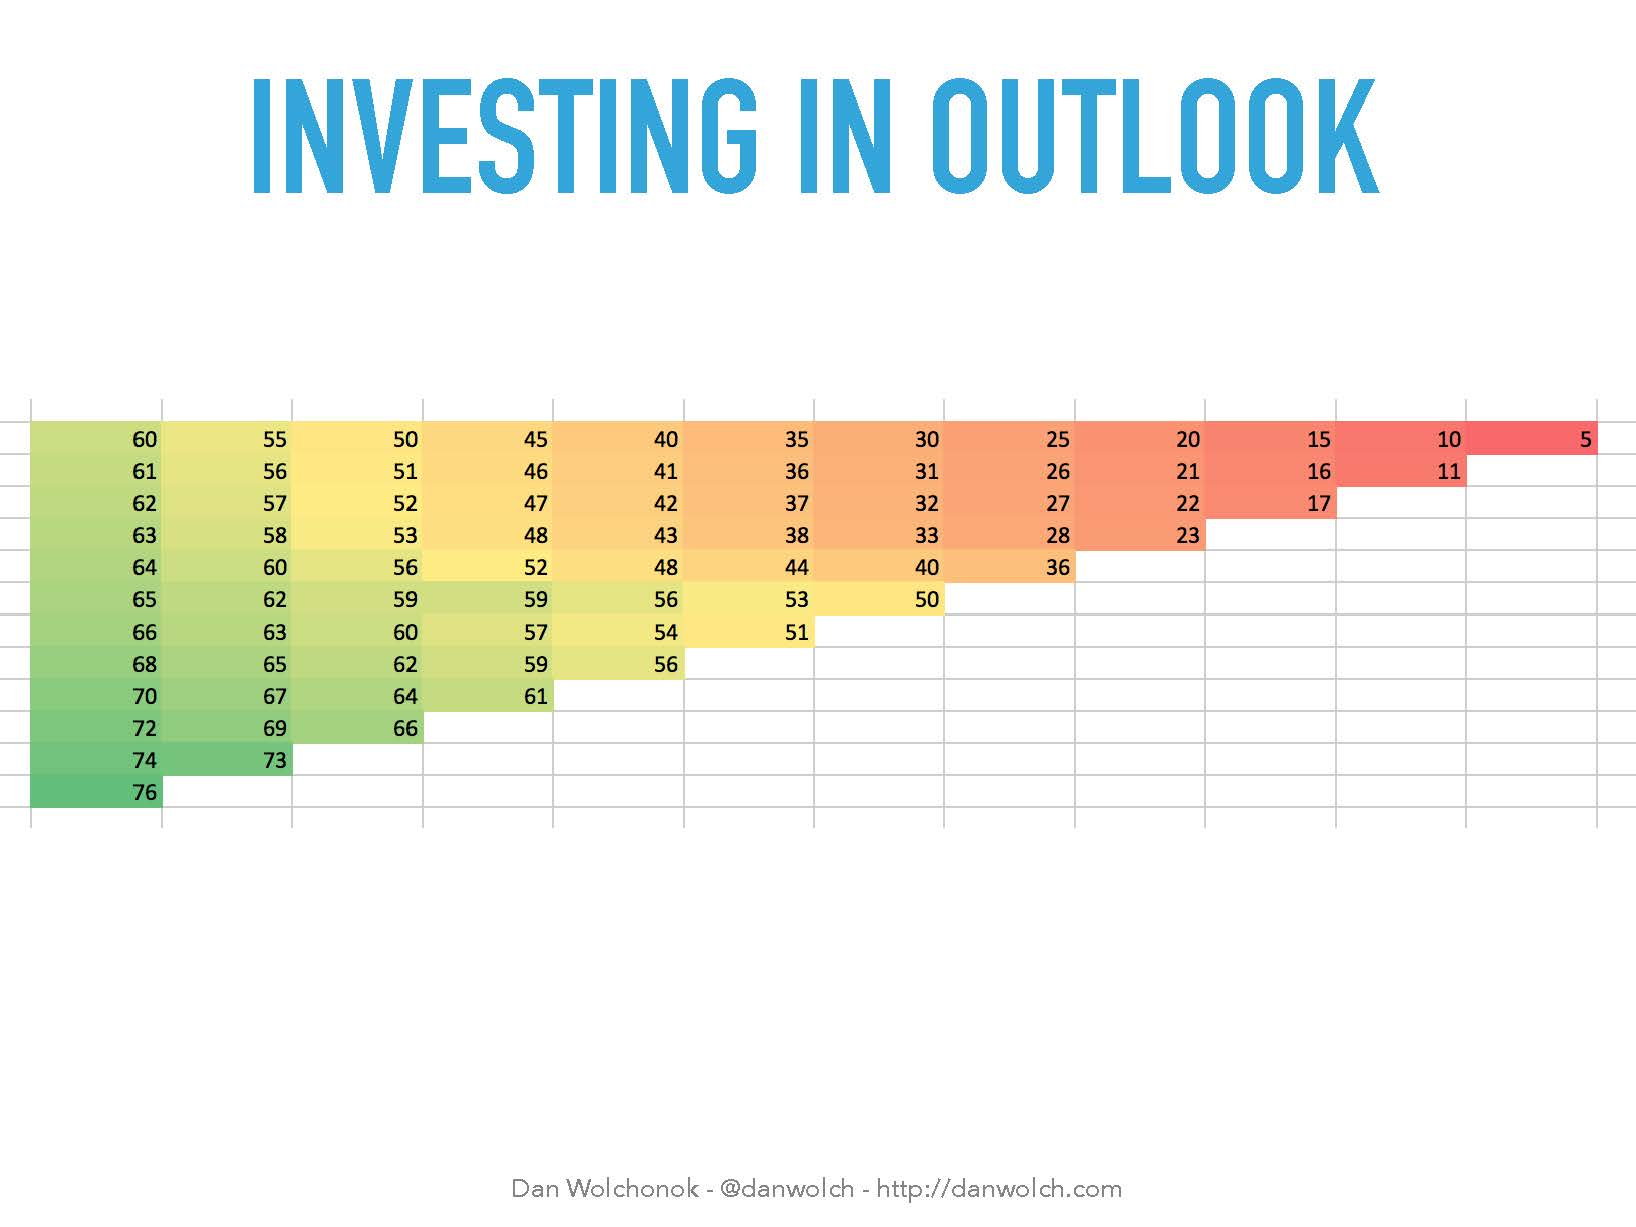 investing in outlook churn cohorts